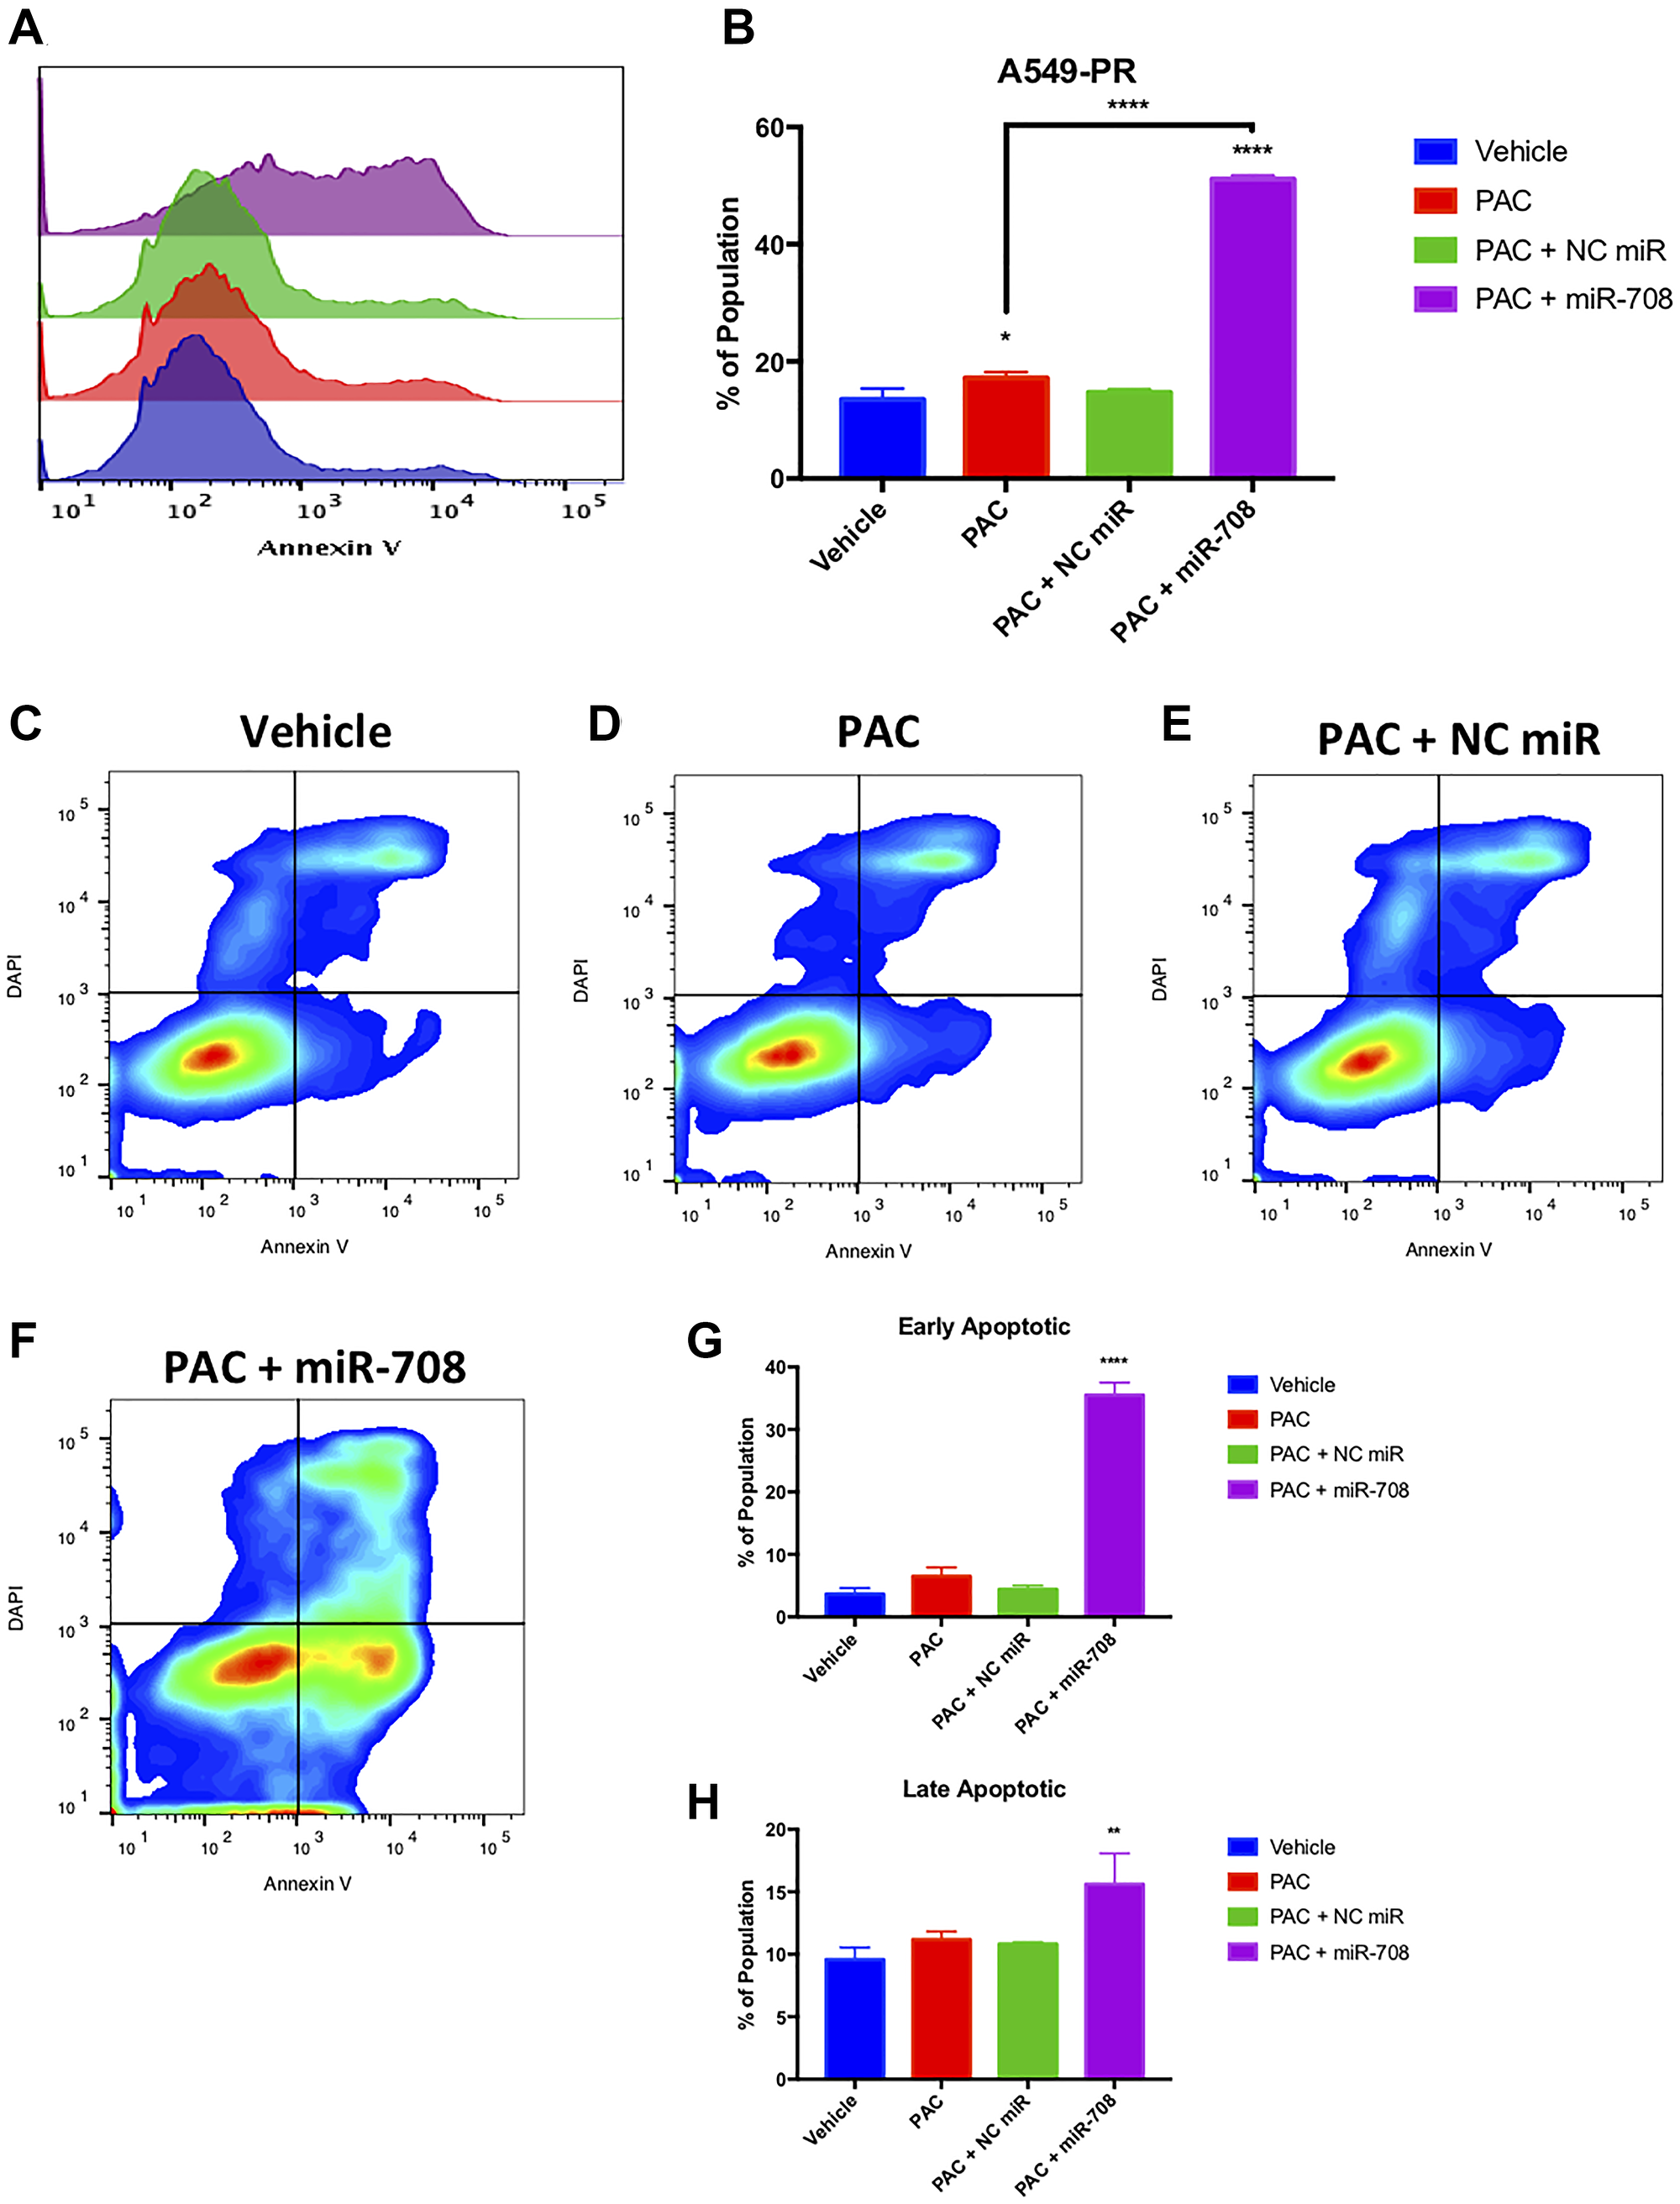 Combinatory miR-708-5p + PAC treatment induces apoptosis in A549-PR cells.